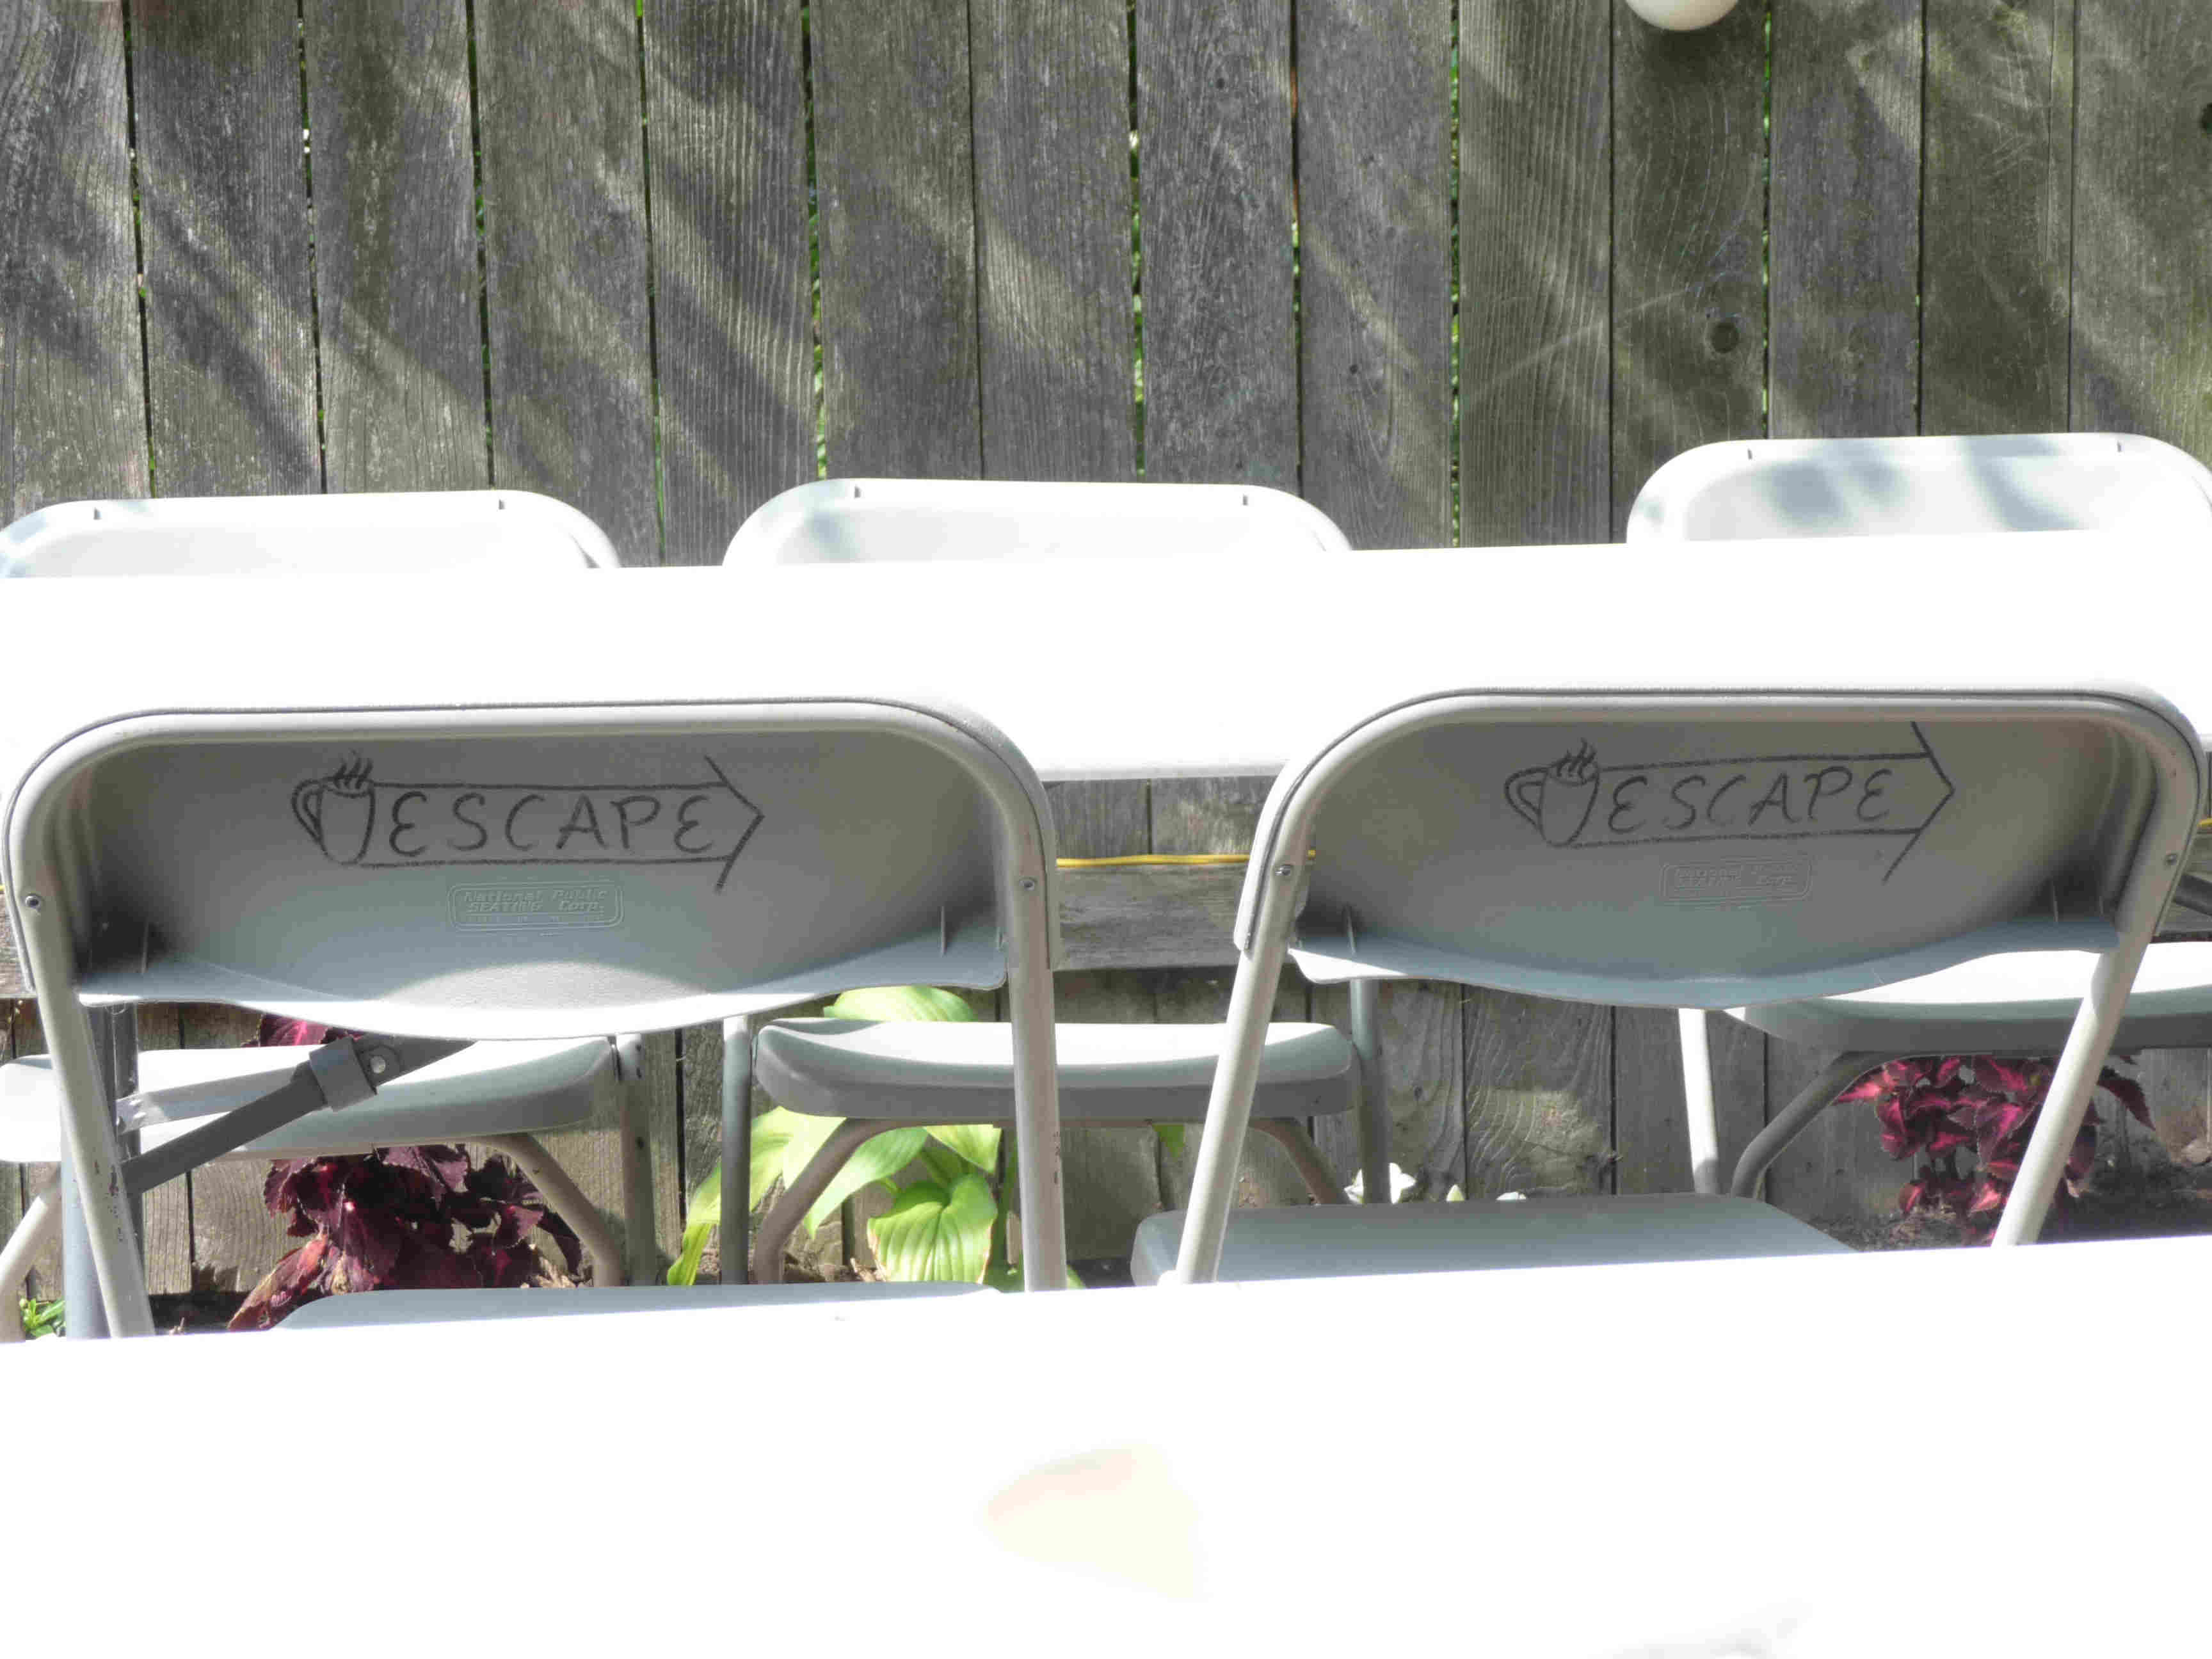 I wonder if someone tried to take these awesome chairs....